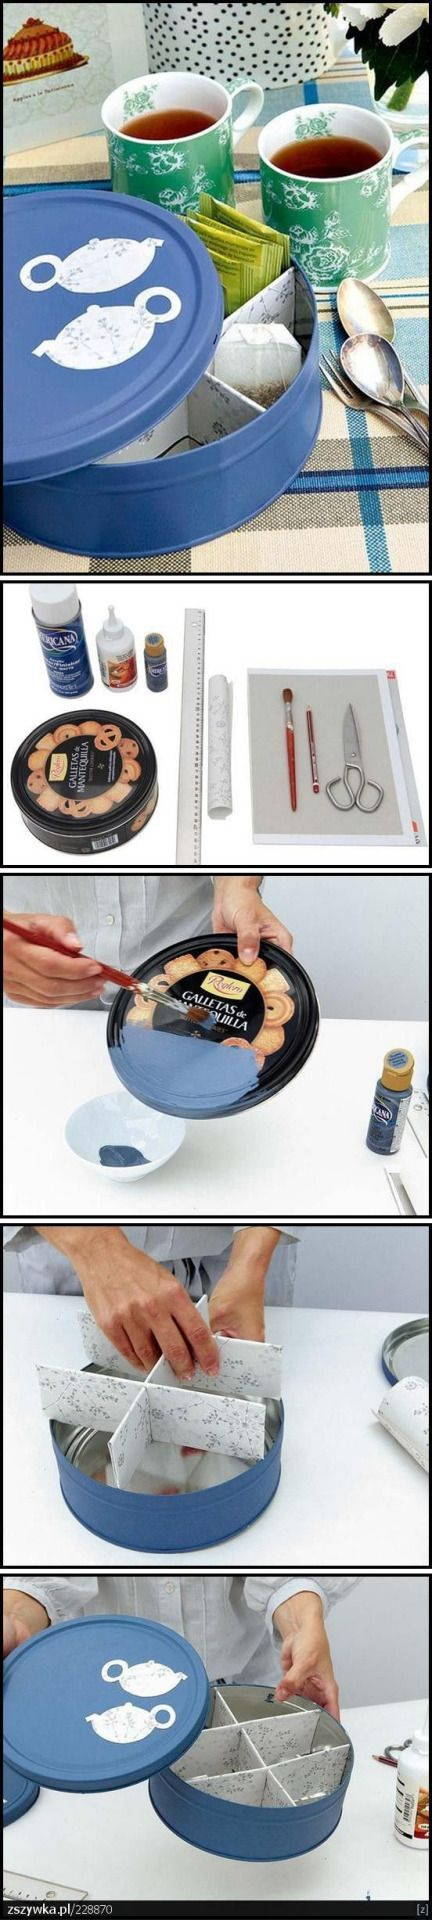 """drinkyourteanow: """"Danish cookies tins don't need to be just sewing equipment containers """""""